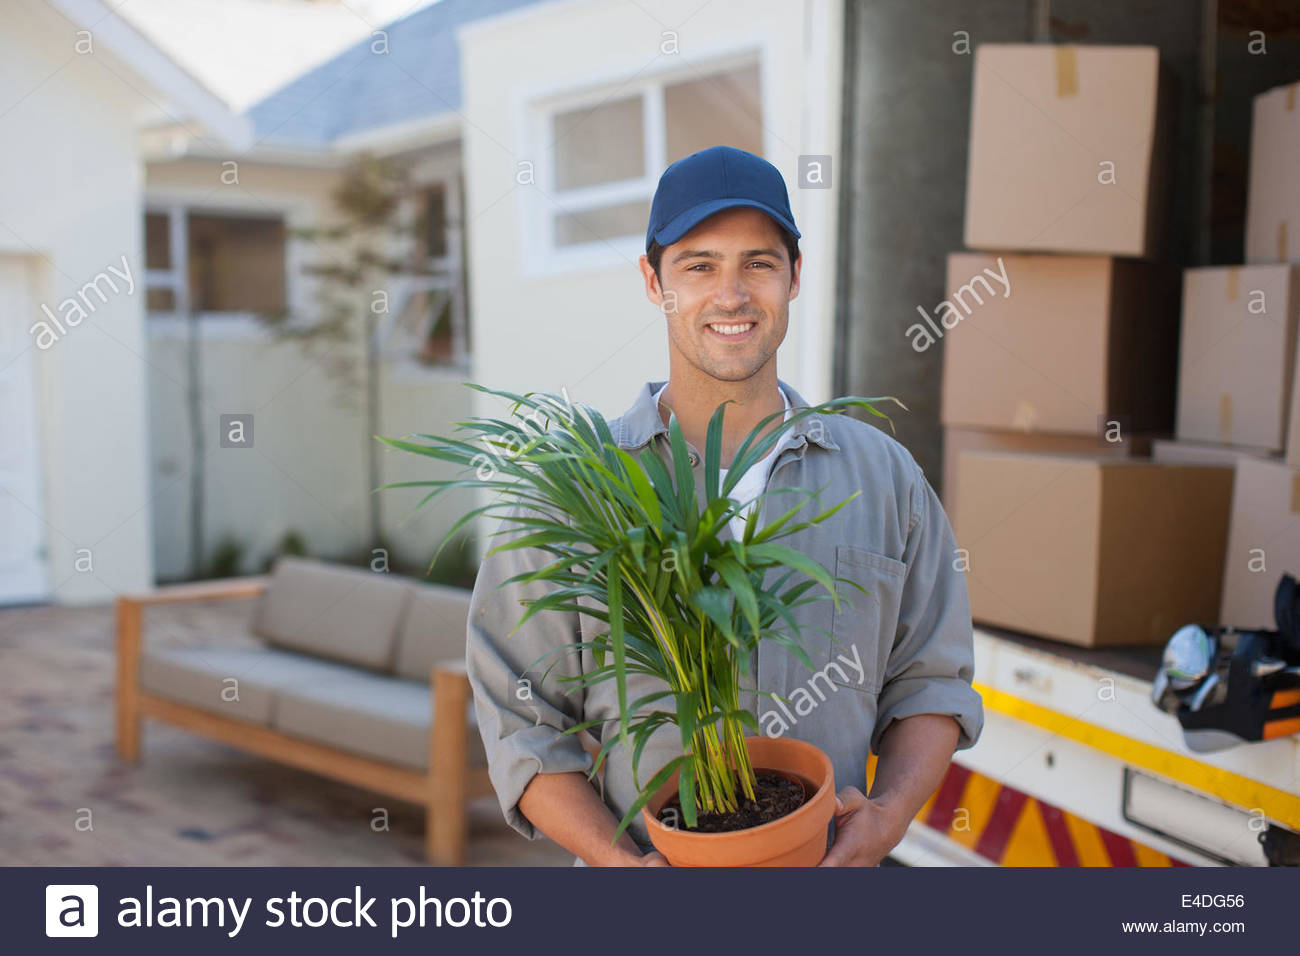 Smiling man carrying Flowerpot moving van - Stock Image